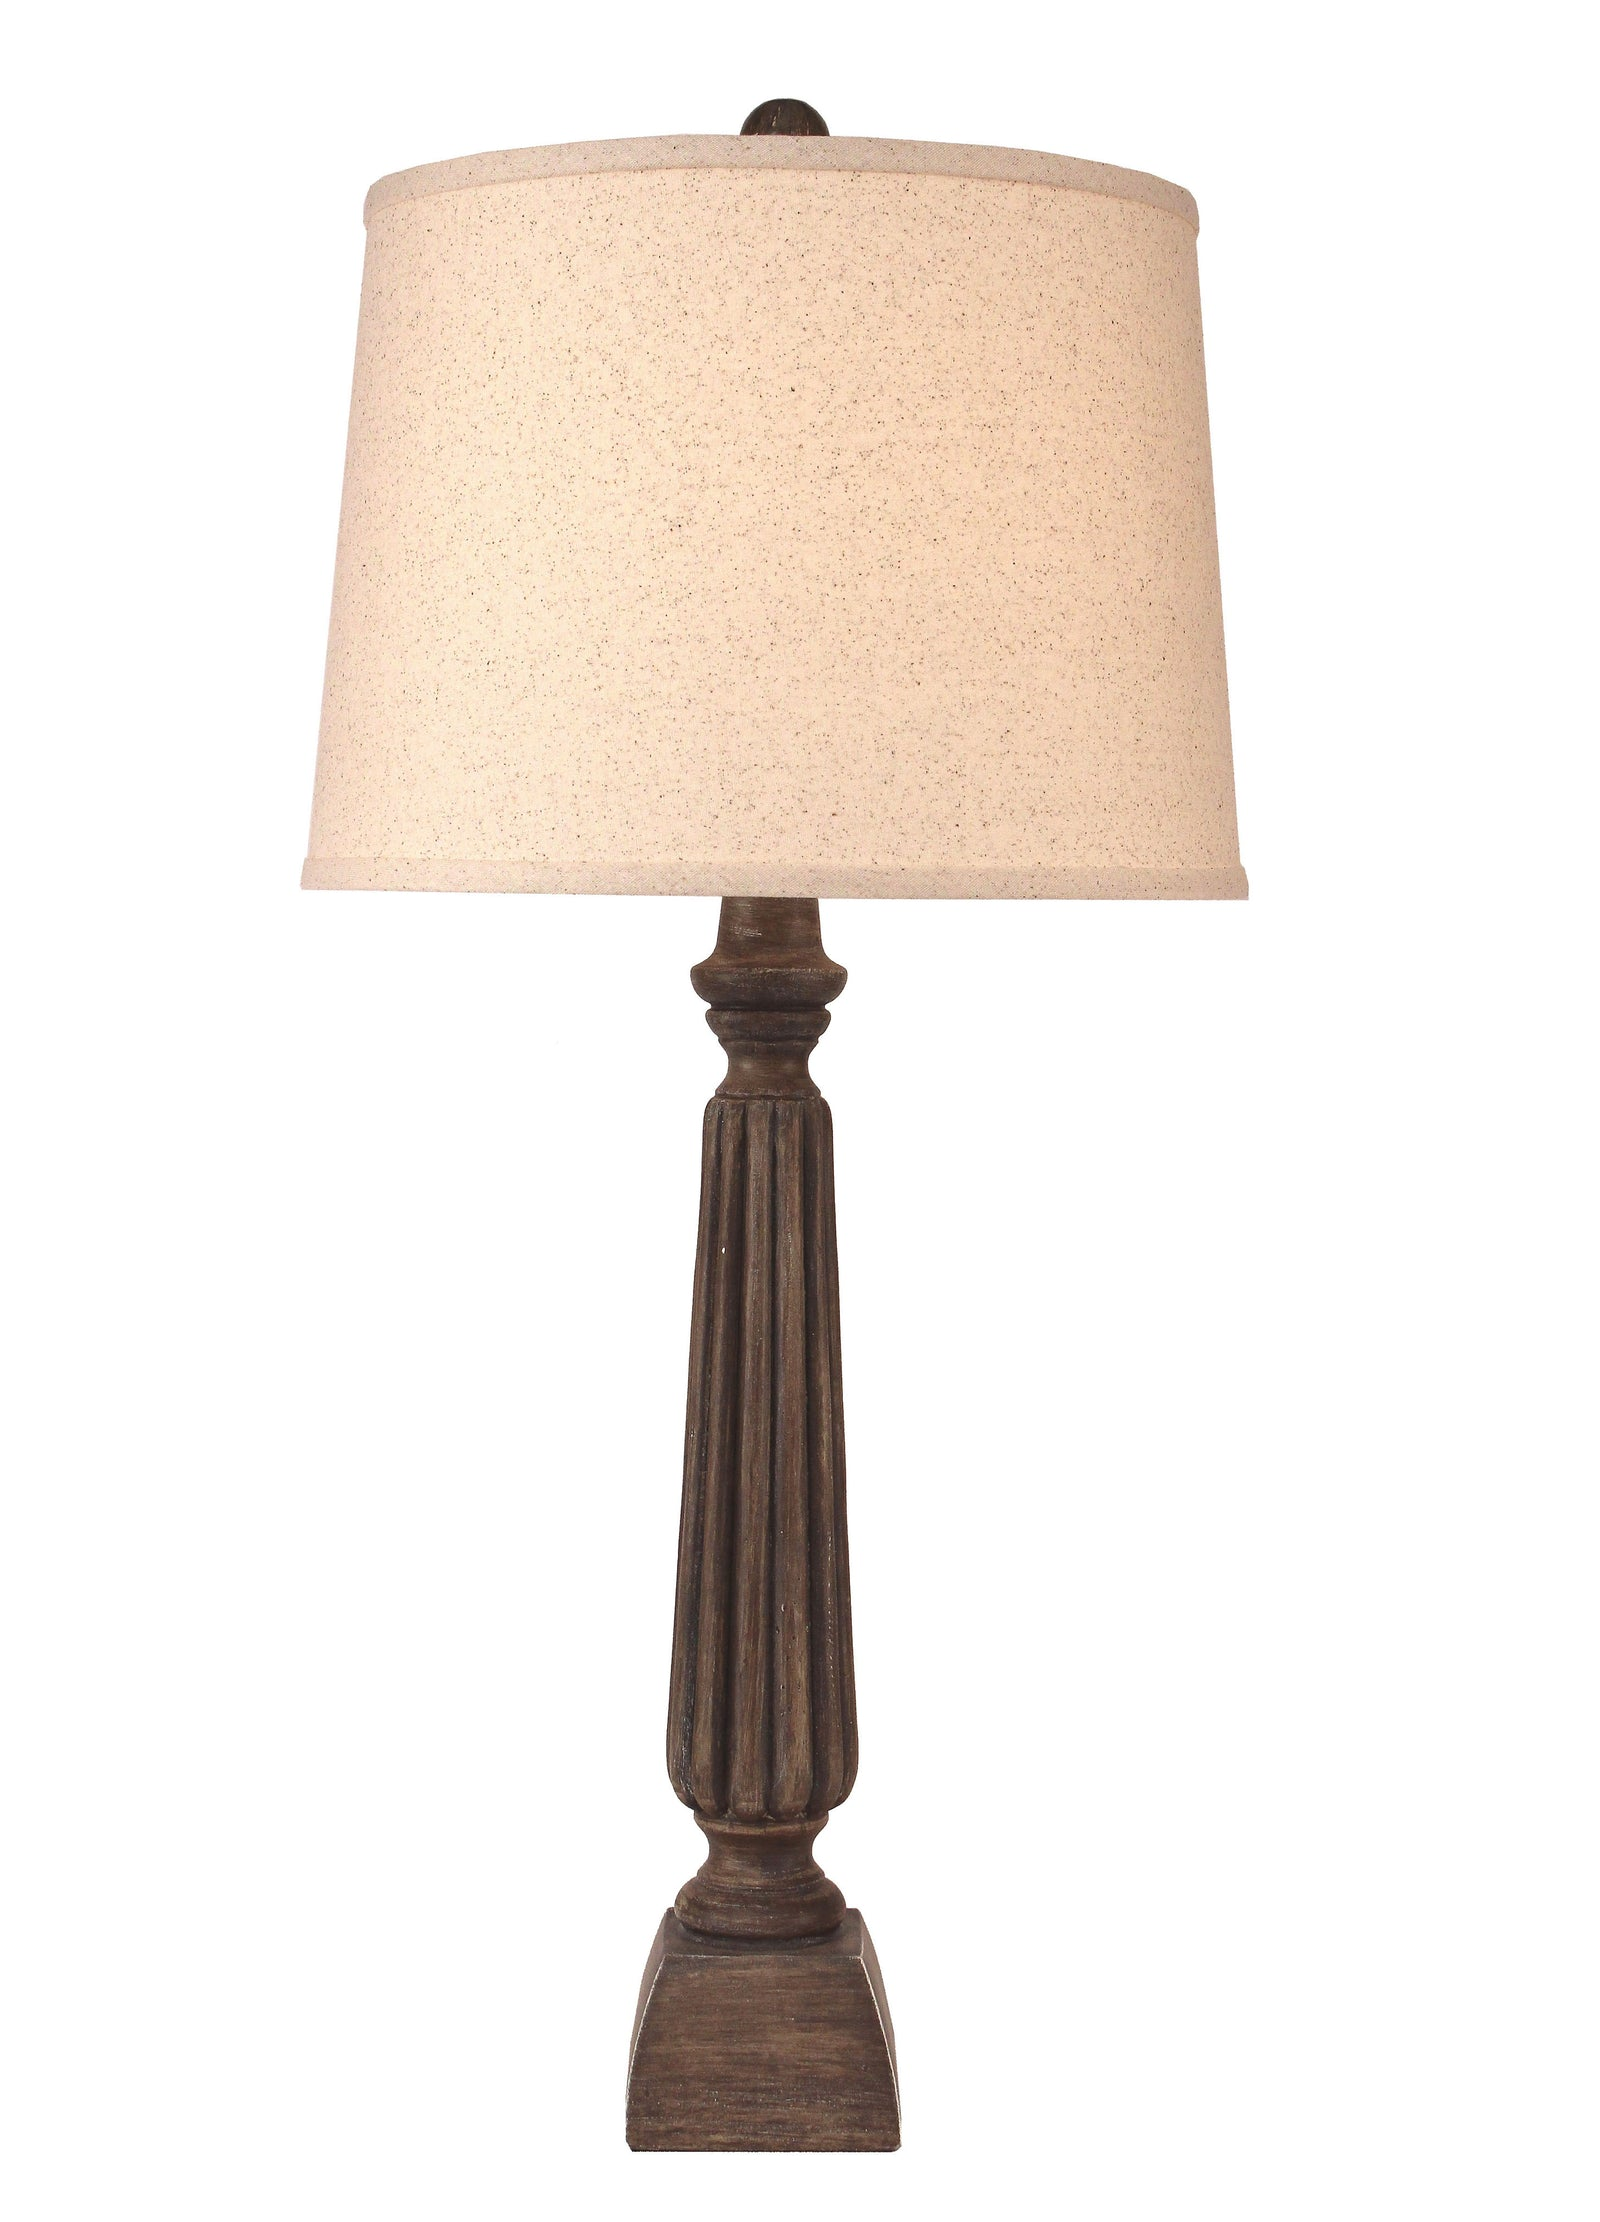 Greywood Ribbed Candlestick Table Lamp - Coast Lamp Shop